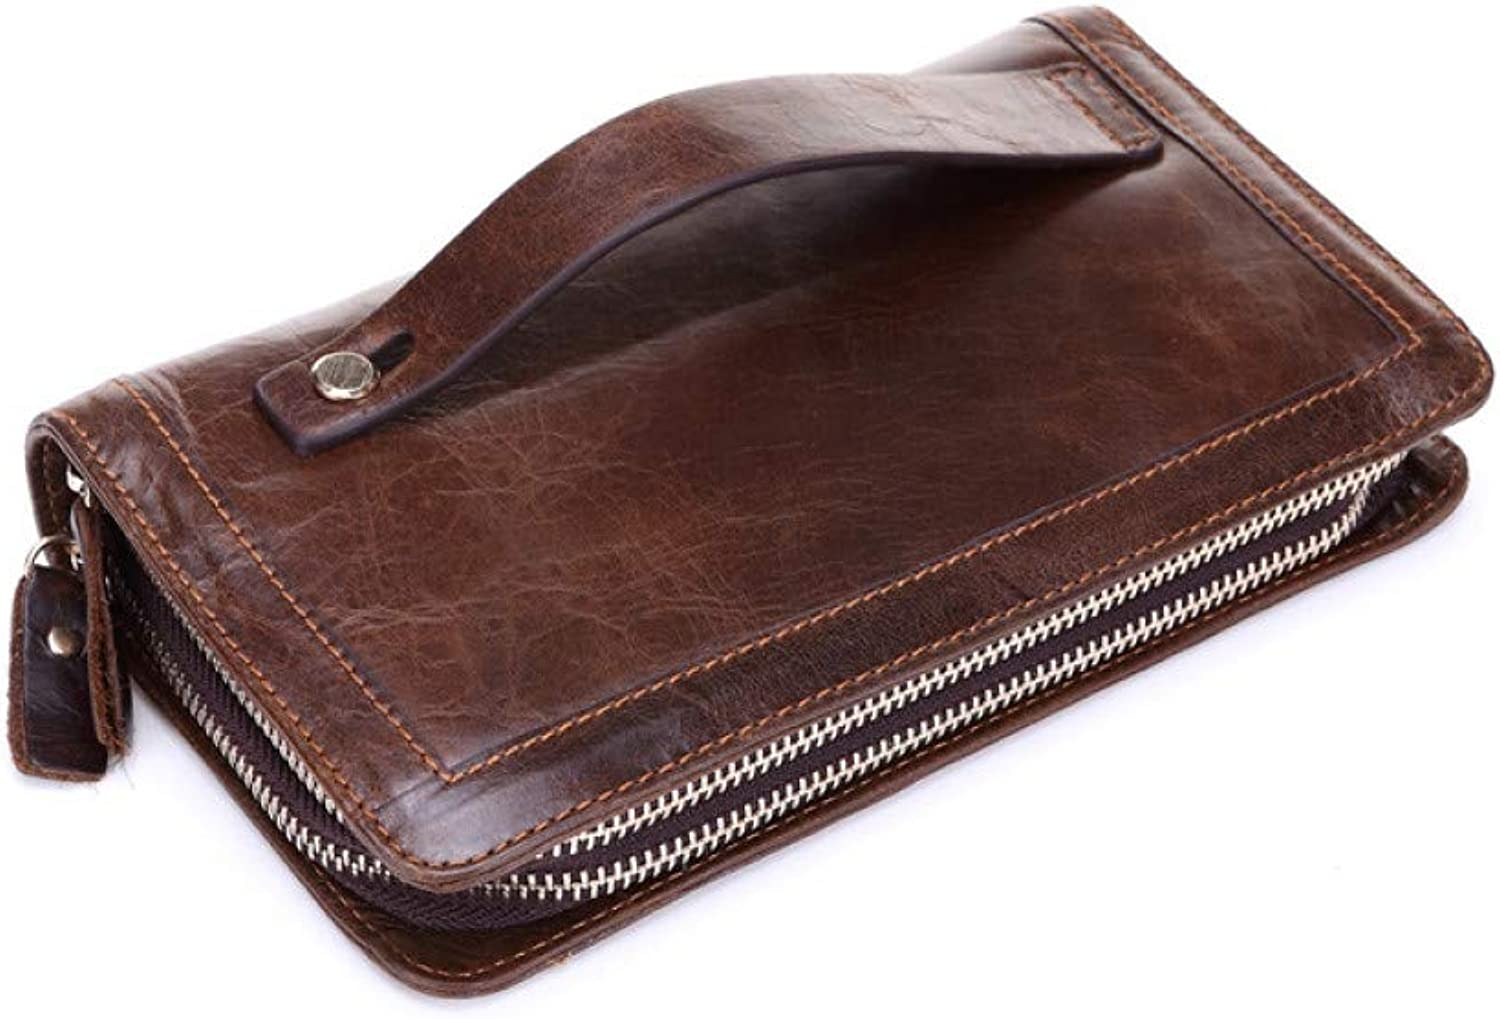 KHGUDS Business Men Long Organizer Wallets Luxury Natural Real Leather Male Genuine Leather Cash Purses Clutch Card Holders